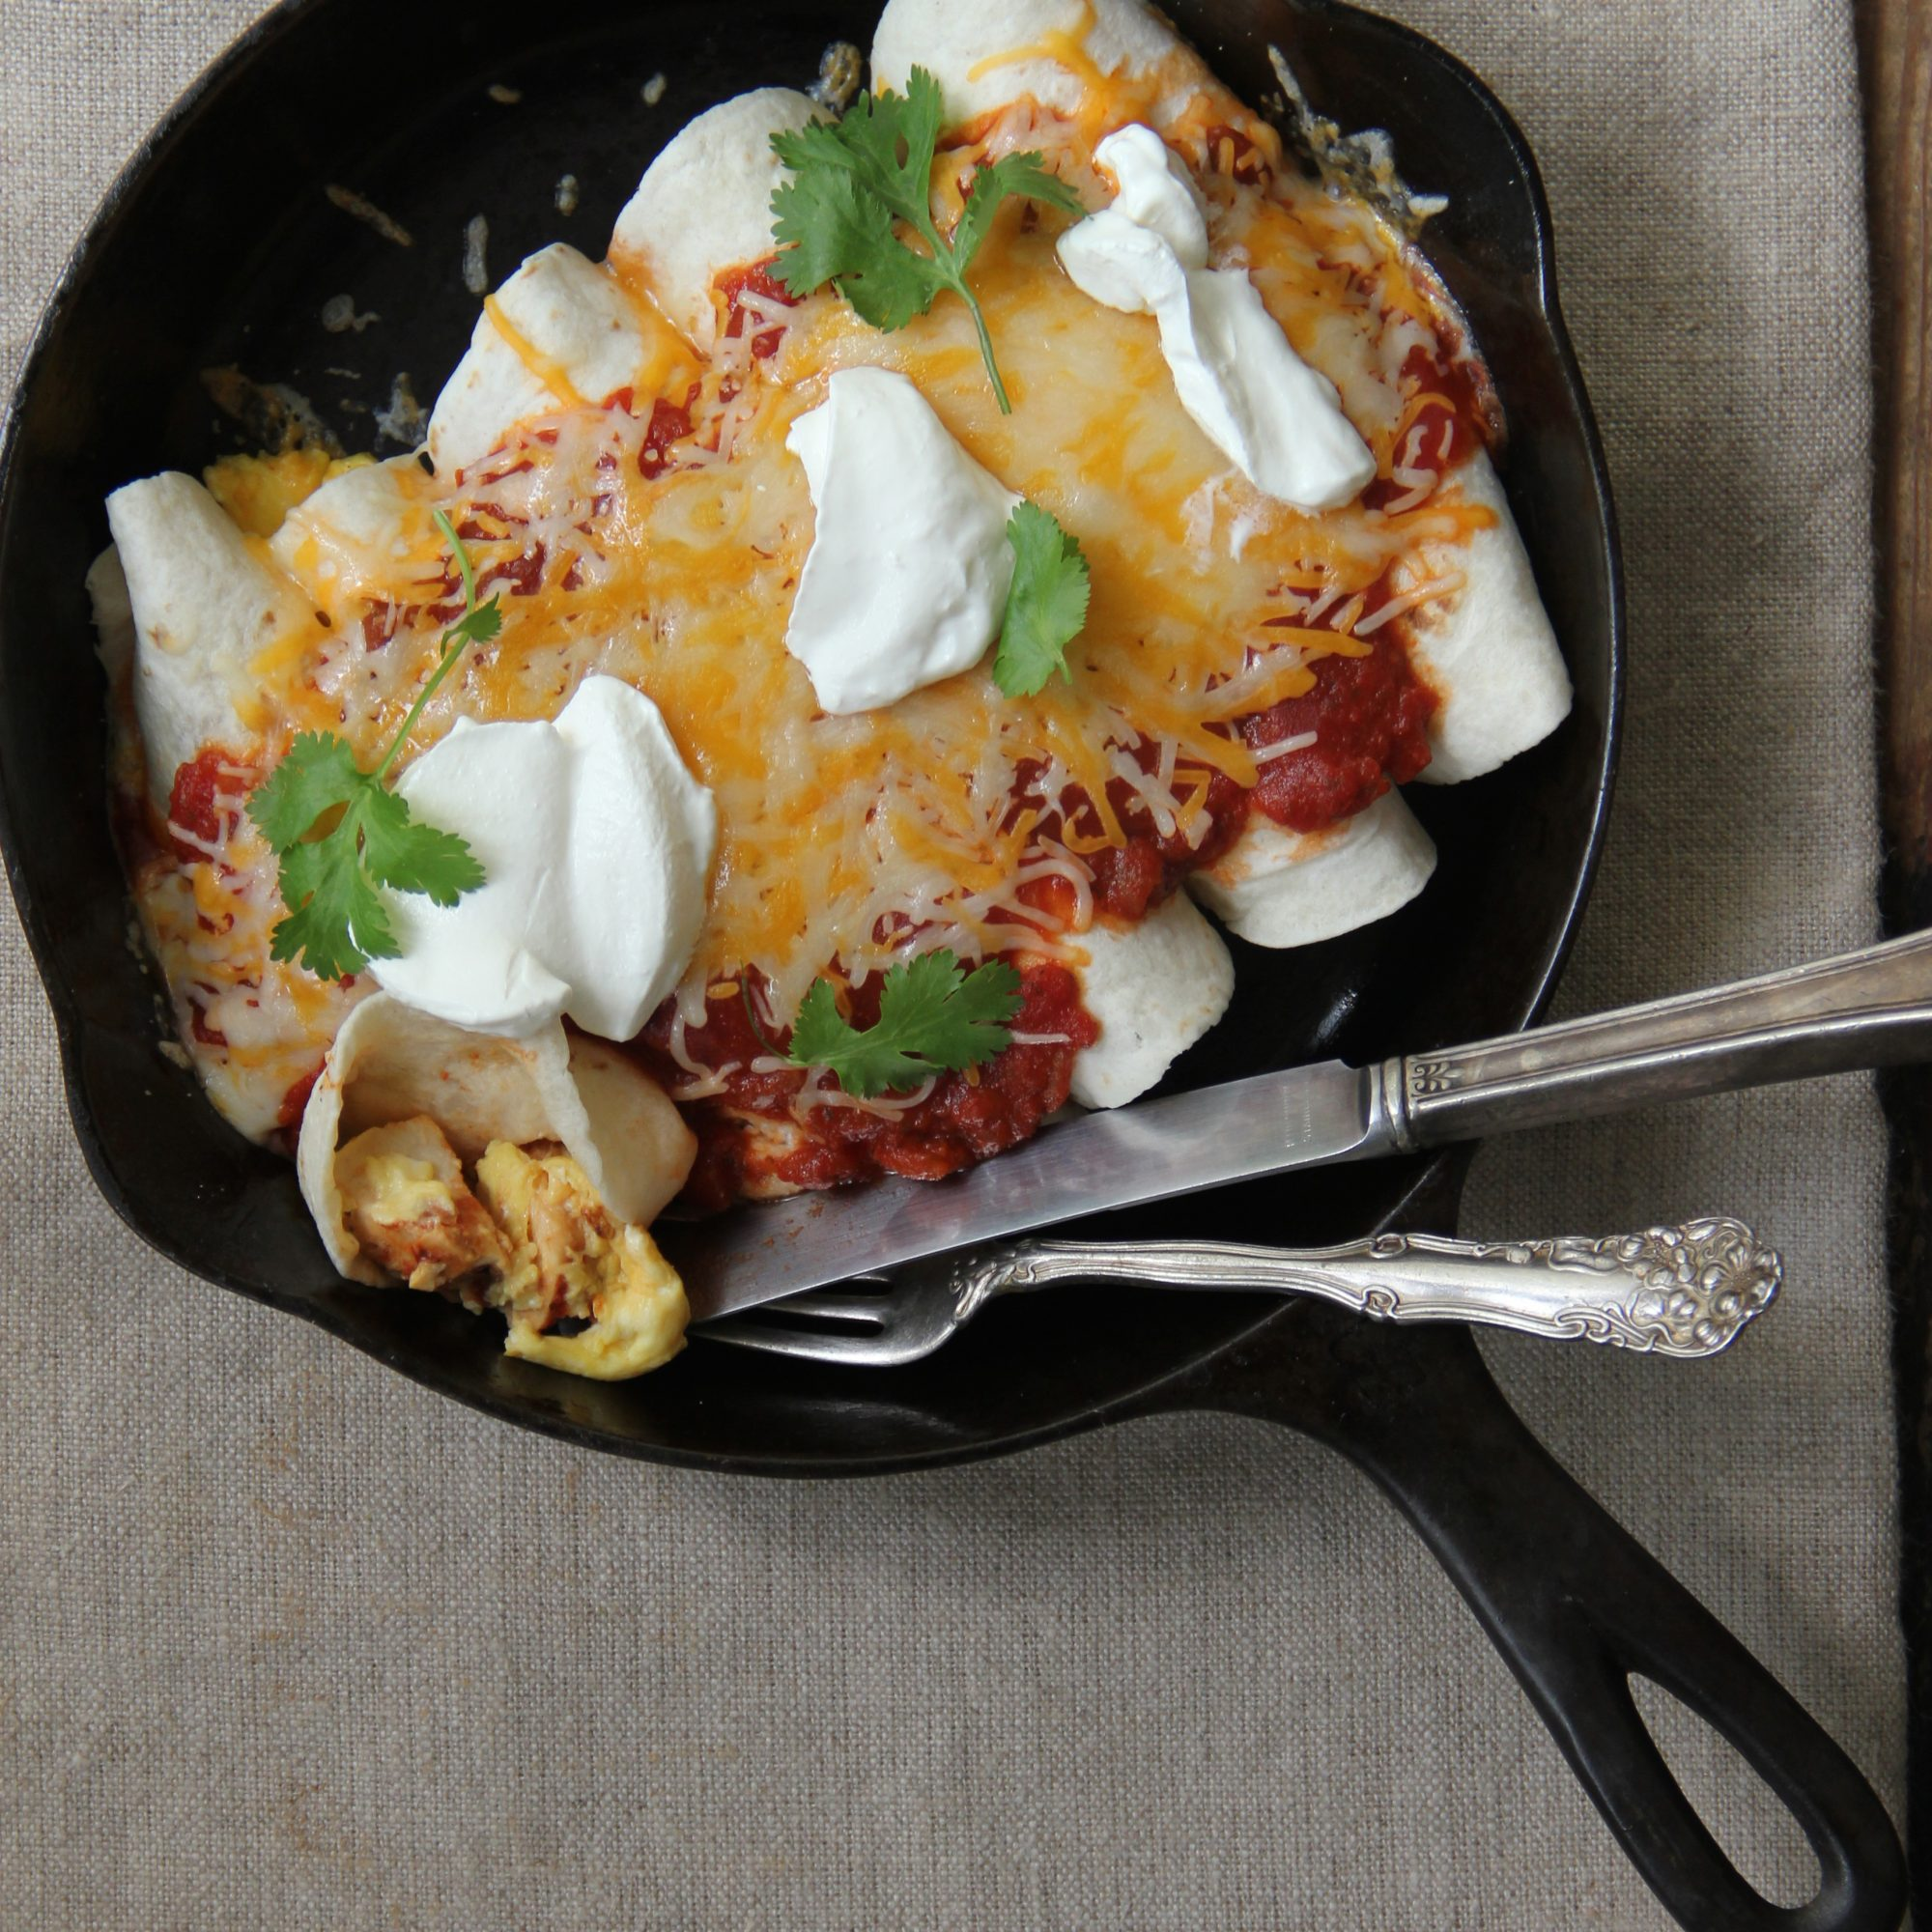 hd-201404-r-breakfast-chicken-enchiladas.jpg